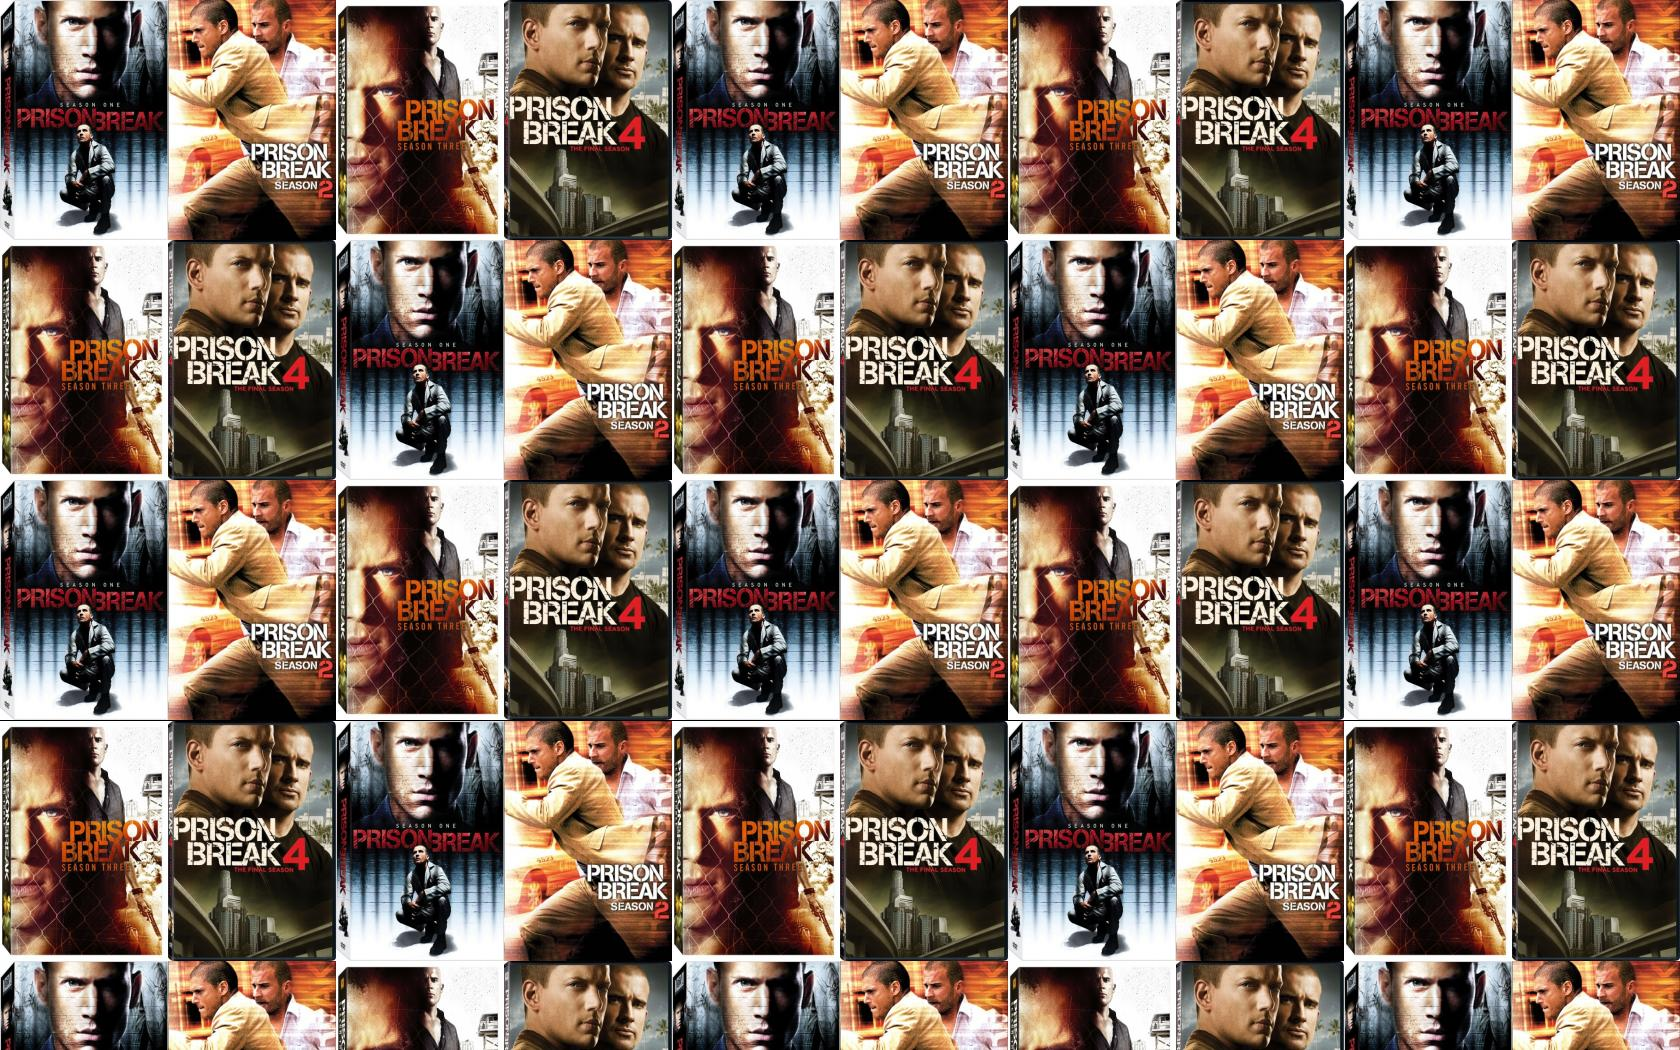 Prison Break Season 1 Prison Break Season 2 Wallpaper Tiled